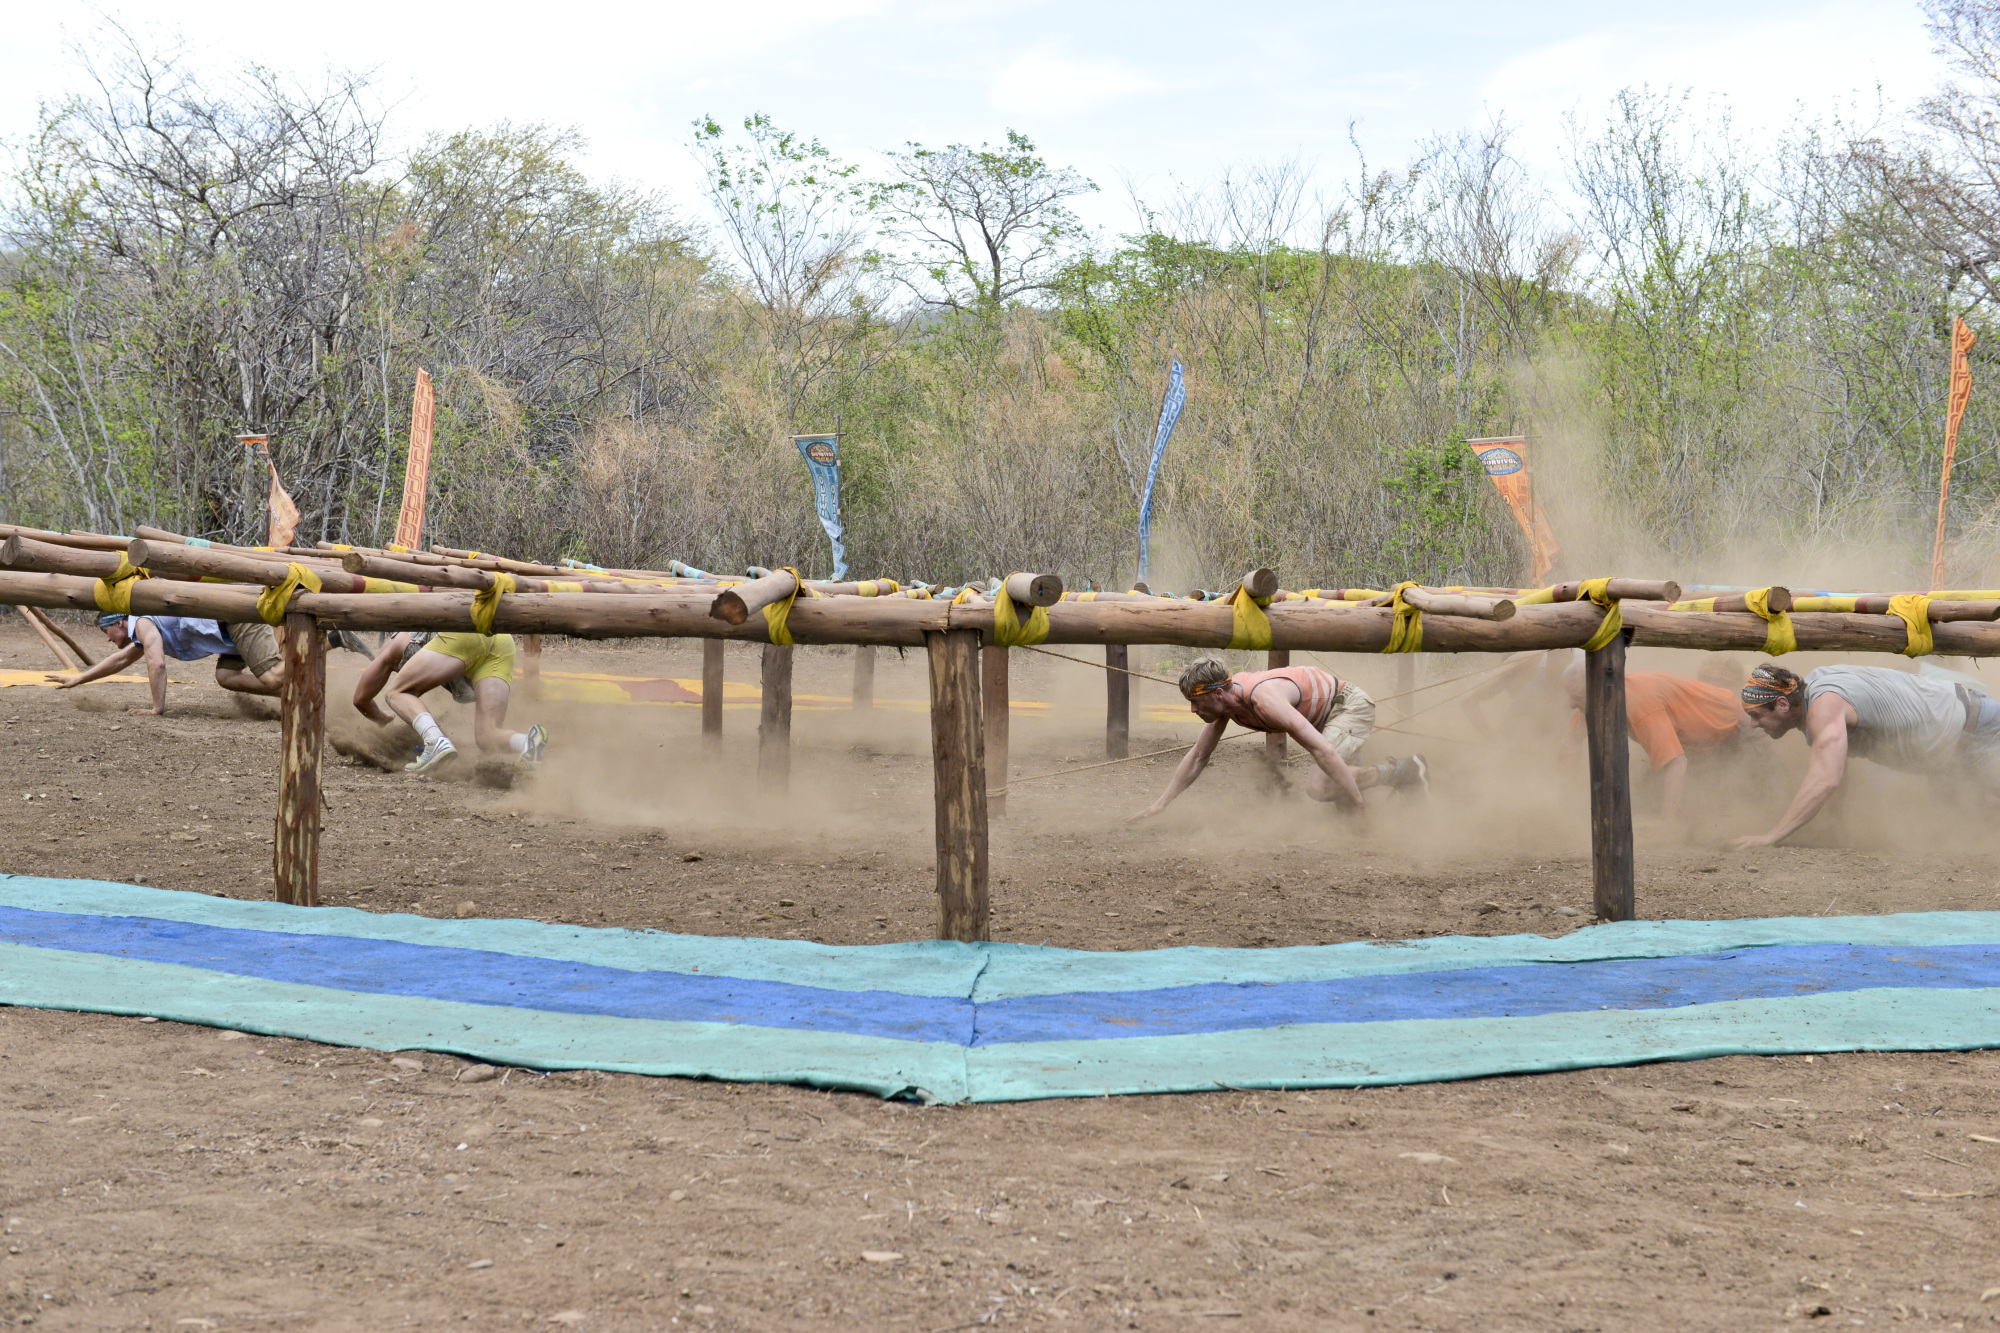 The Coyopa and Hunahpu Tribes compete